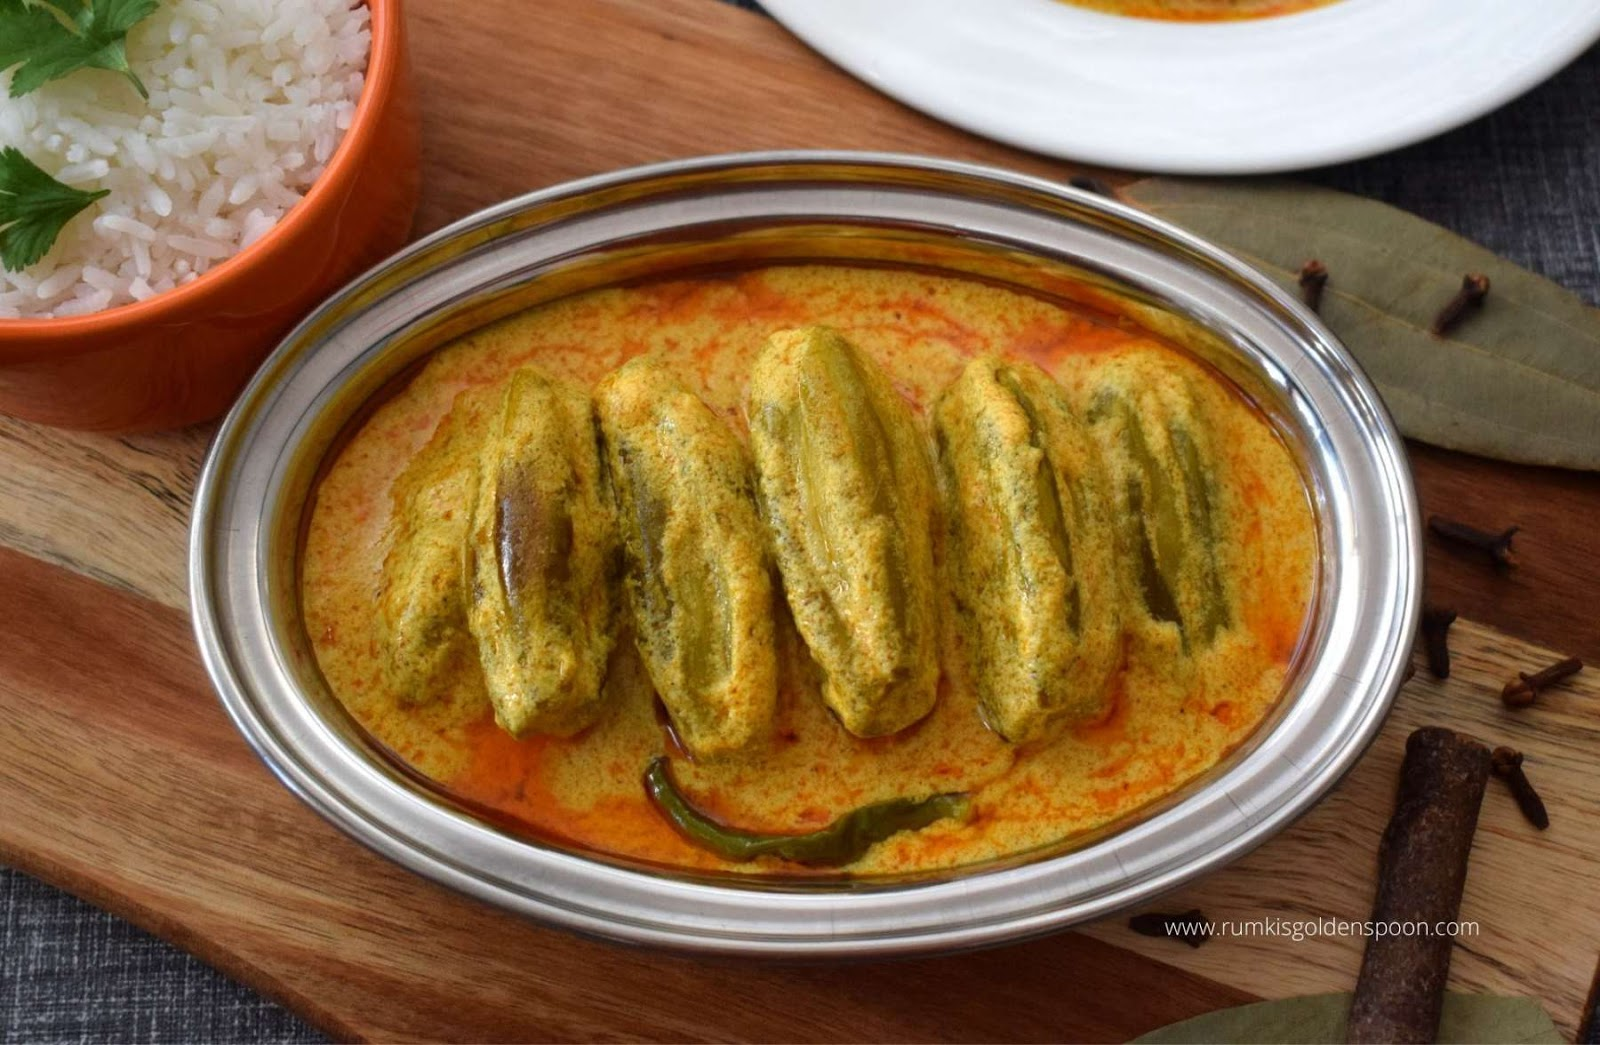 doi potol, doi potol recipe, bengali doi potol recipe, doi potol bengali recipe, niramish doi potol, doi potol without onion garlic, dahi parwal, dahi parwal recipe, dahi parwal ki sabzi, how to make doi potol, pointed gourd recipe, recipes of pointed gourd, pointed gourd recipes Indian, bengali traditional food, traditional food of Bengali, traditional bengali food, Indian recipe, veg recipes of India, bengali veg recipe, bengali vegetable recipe, no onion garlic recipe, no onion no garlic recipe, without onion garlic recipes, no onion garlic recipes, bengali recipe, bengali recipes, bengali food, vegetarian recipes of india, vegetarian recipes in India, bengali food recipes, recipes of bengali food, homemade bengali food, Rumki's Golden Spoon